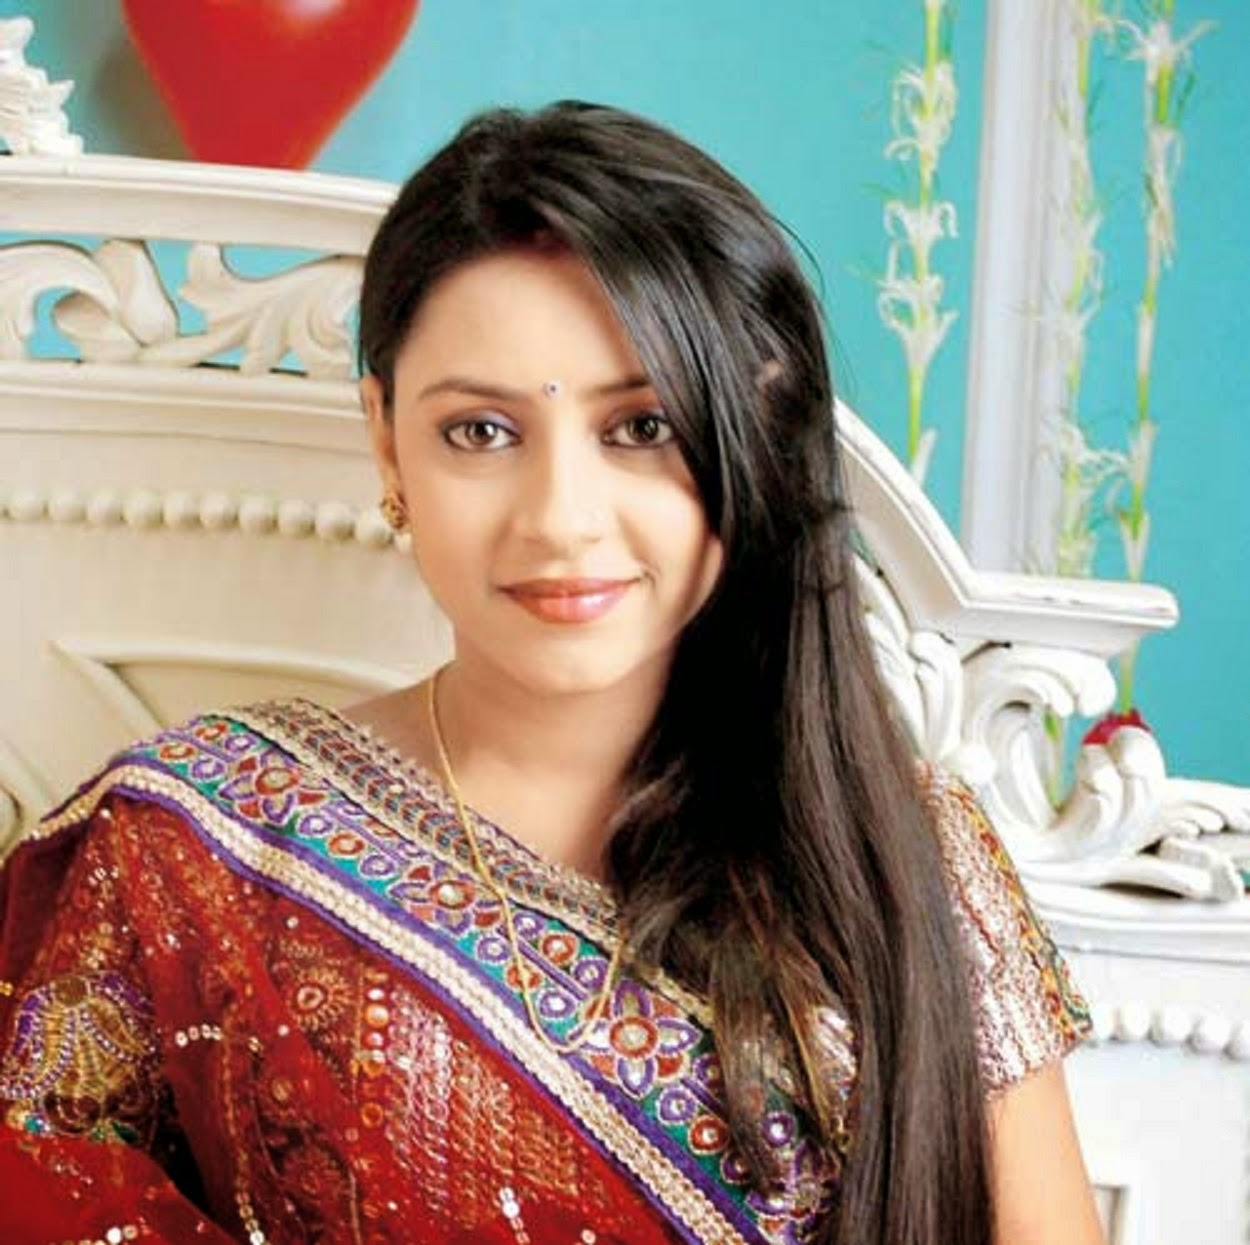 pratyusha-banerjee-beautiful-wallpapers-1